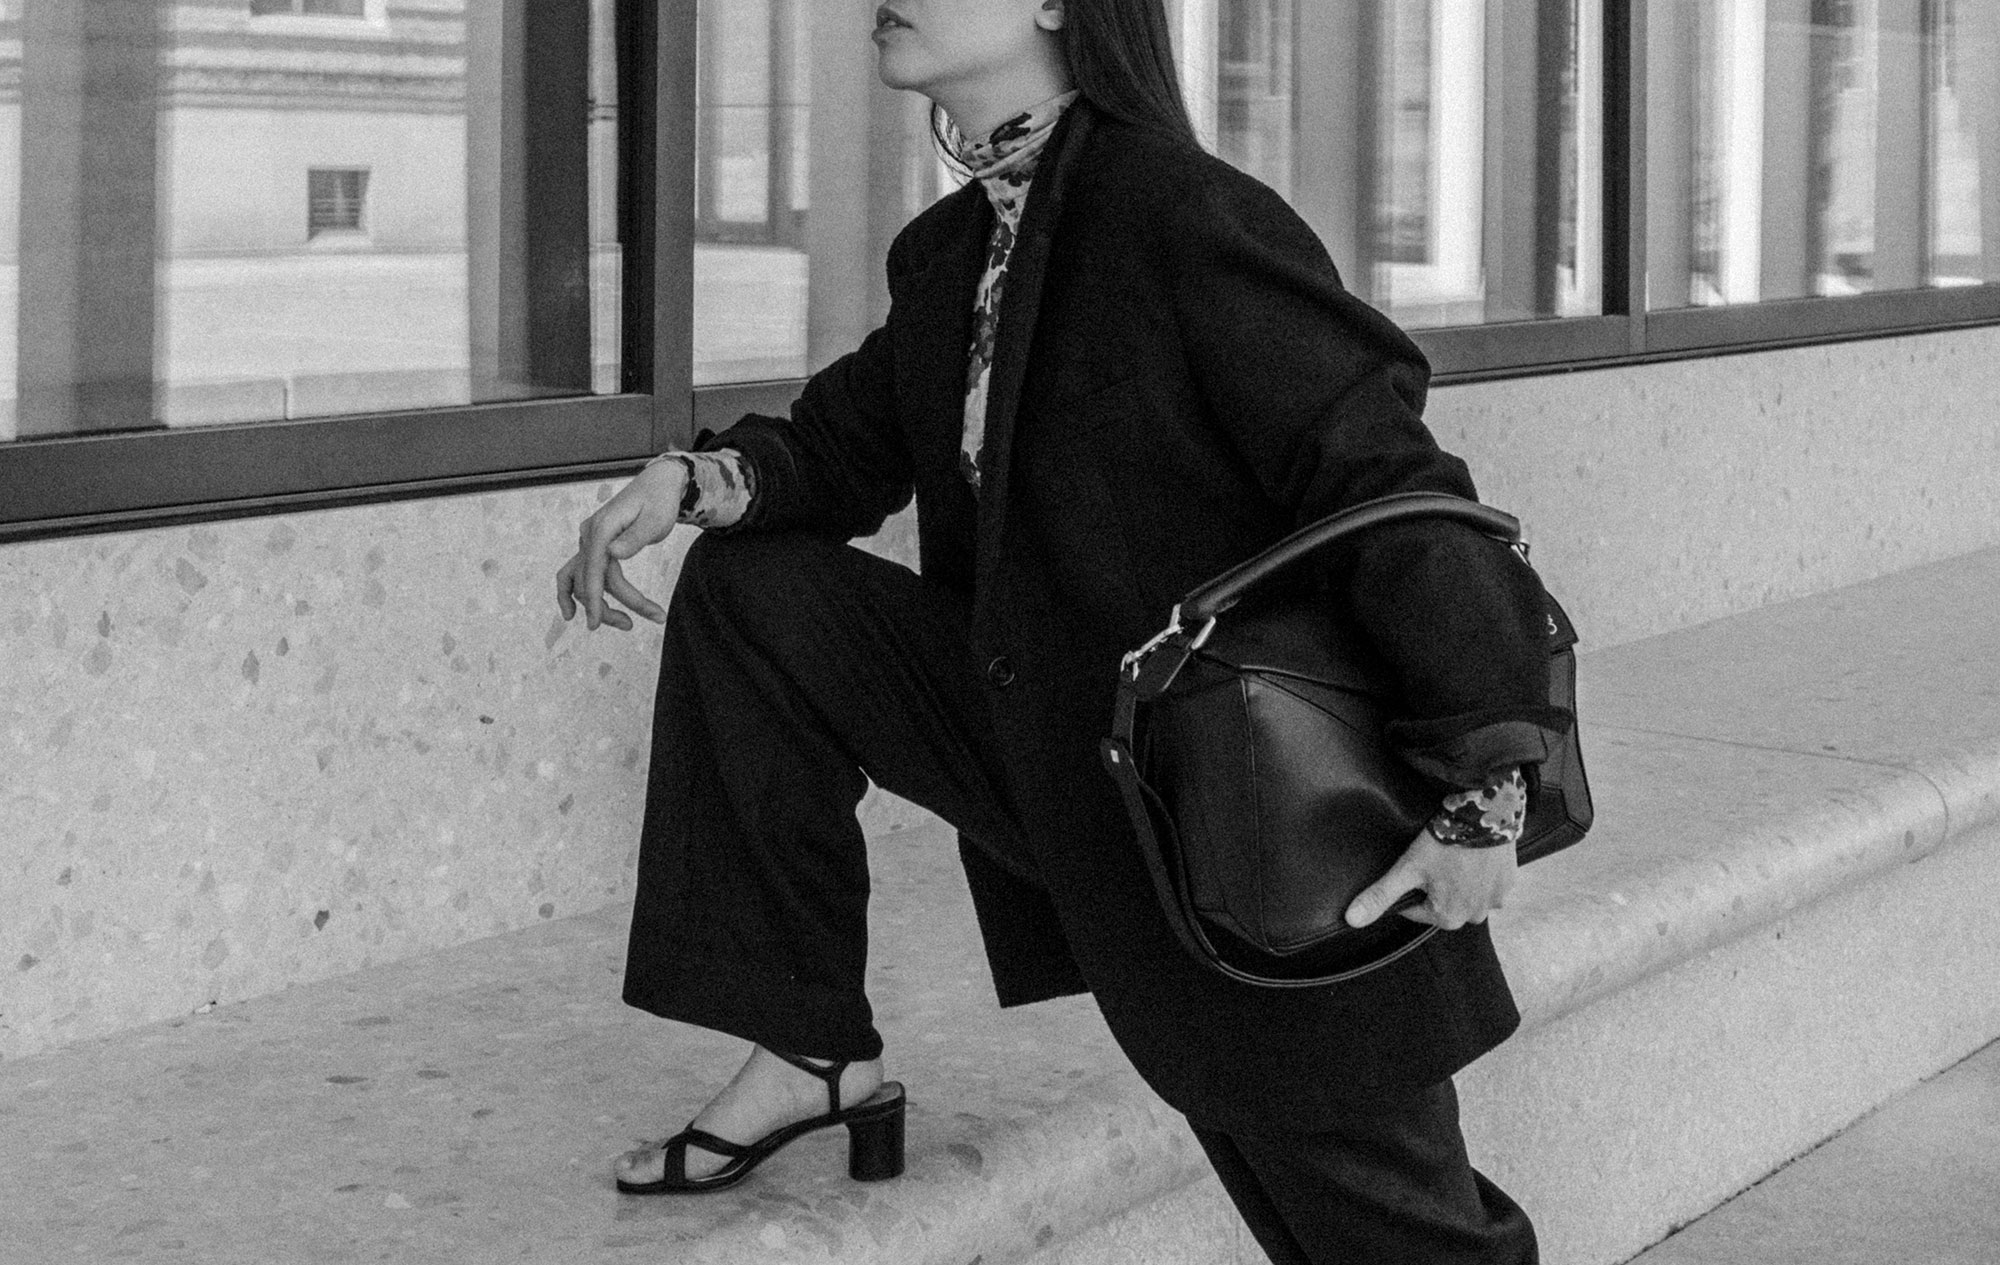 A Touch Of Spring – ARKET Linen Trousers & LOEWE Puzzle Bag / All-Black-Everything Look by Alice M. Huynh – Travel, Lifestyle & Fashionblog from Berlin, Germany / iHeartAlice.com – Minimalist Fashion & Style